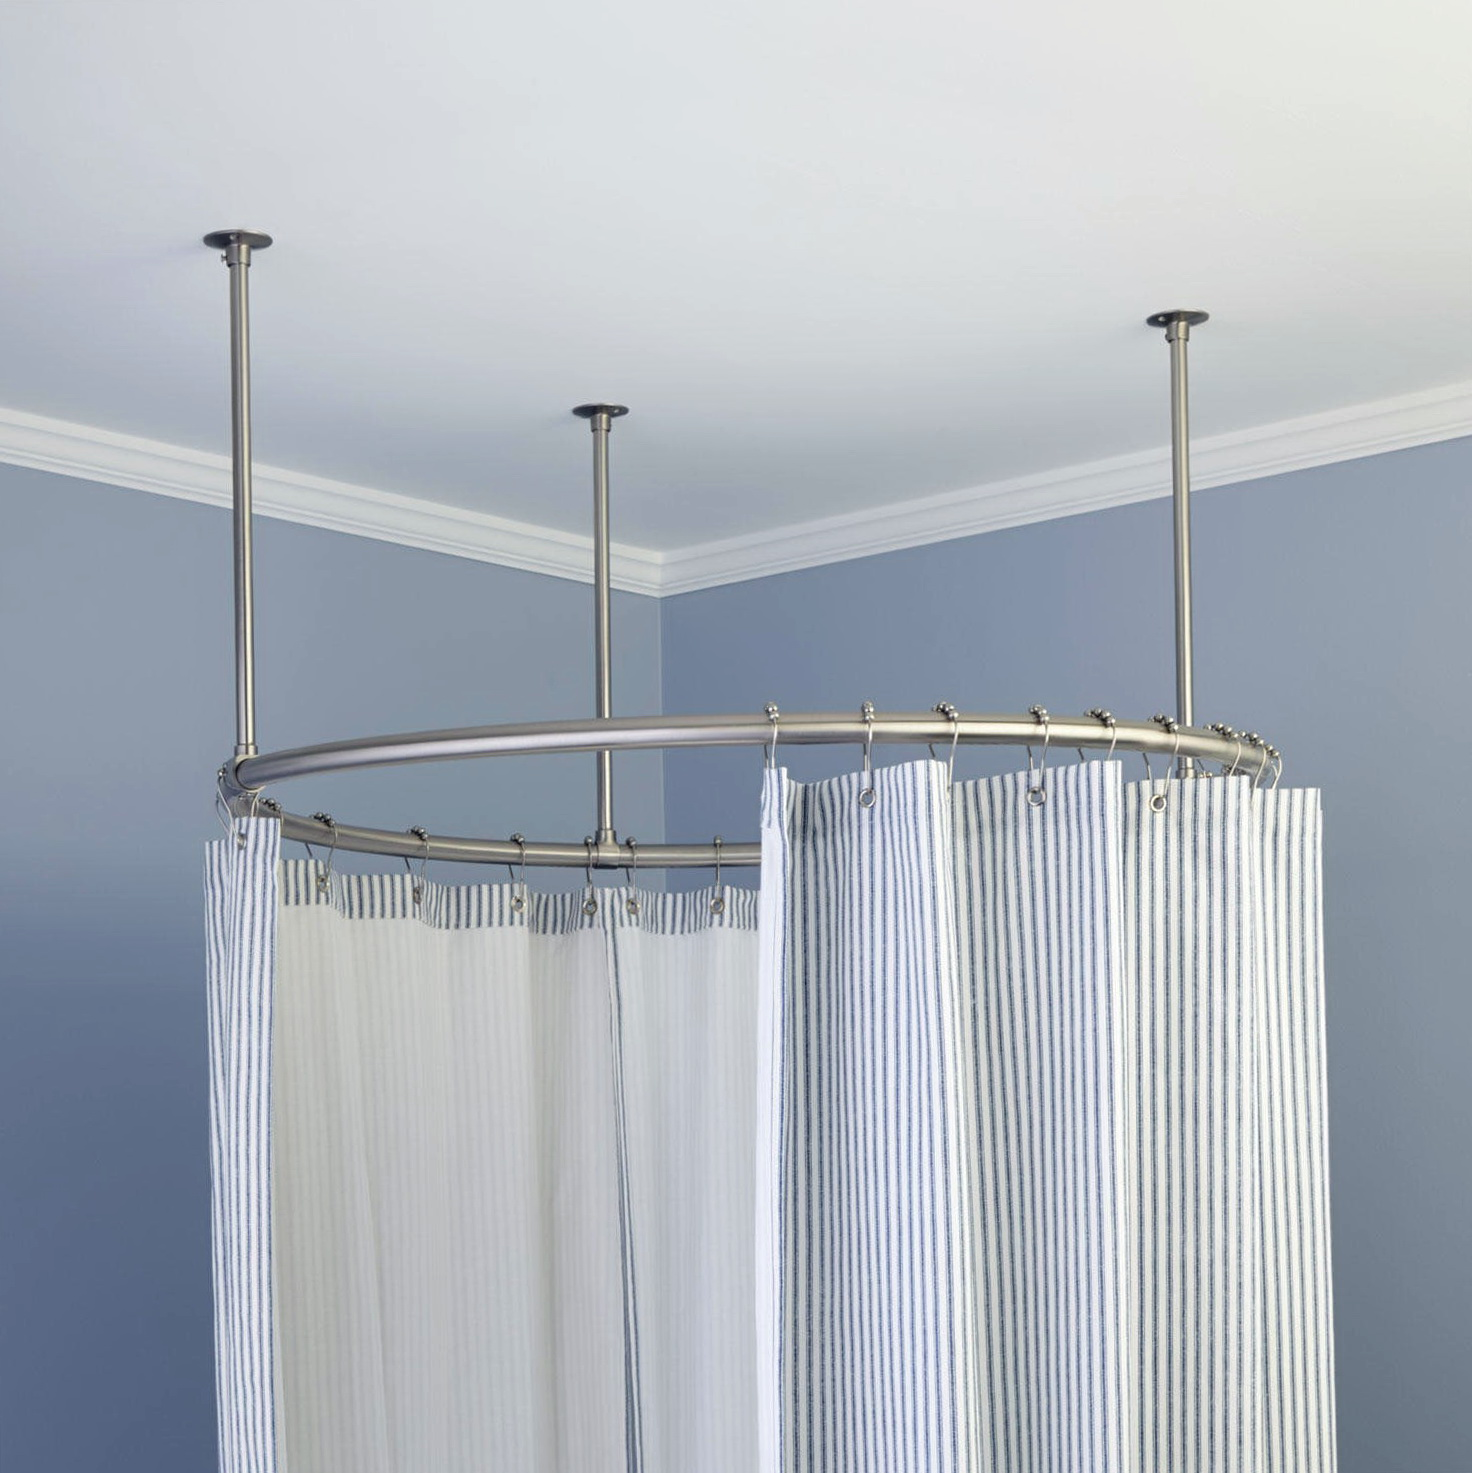 Round Shower Curtain Rod For Clawfoot Tub Home Design Ideas